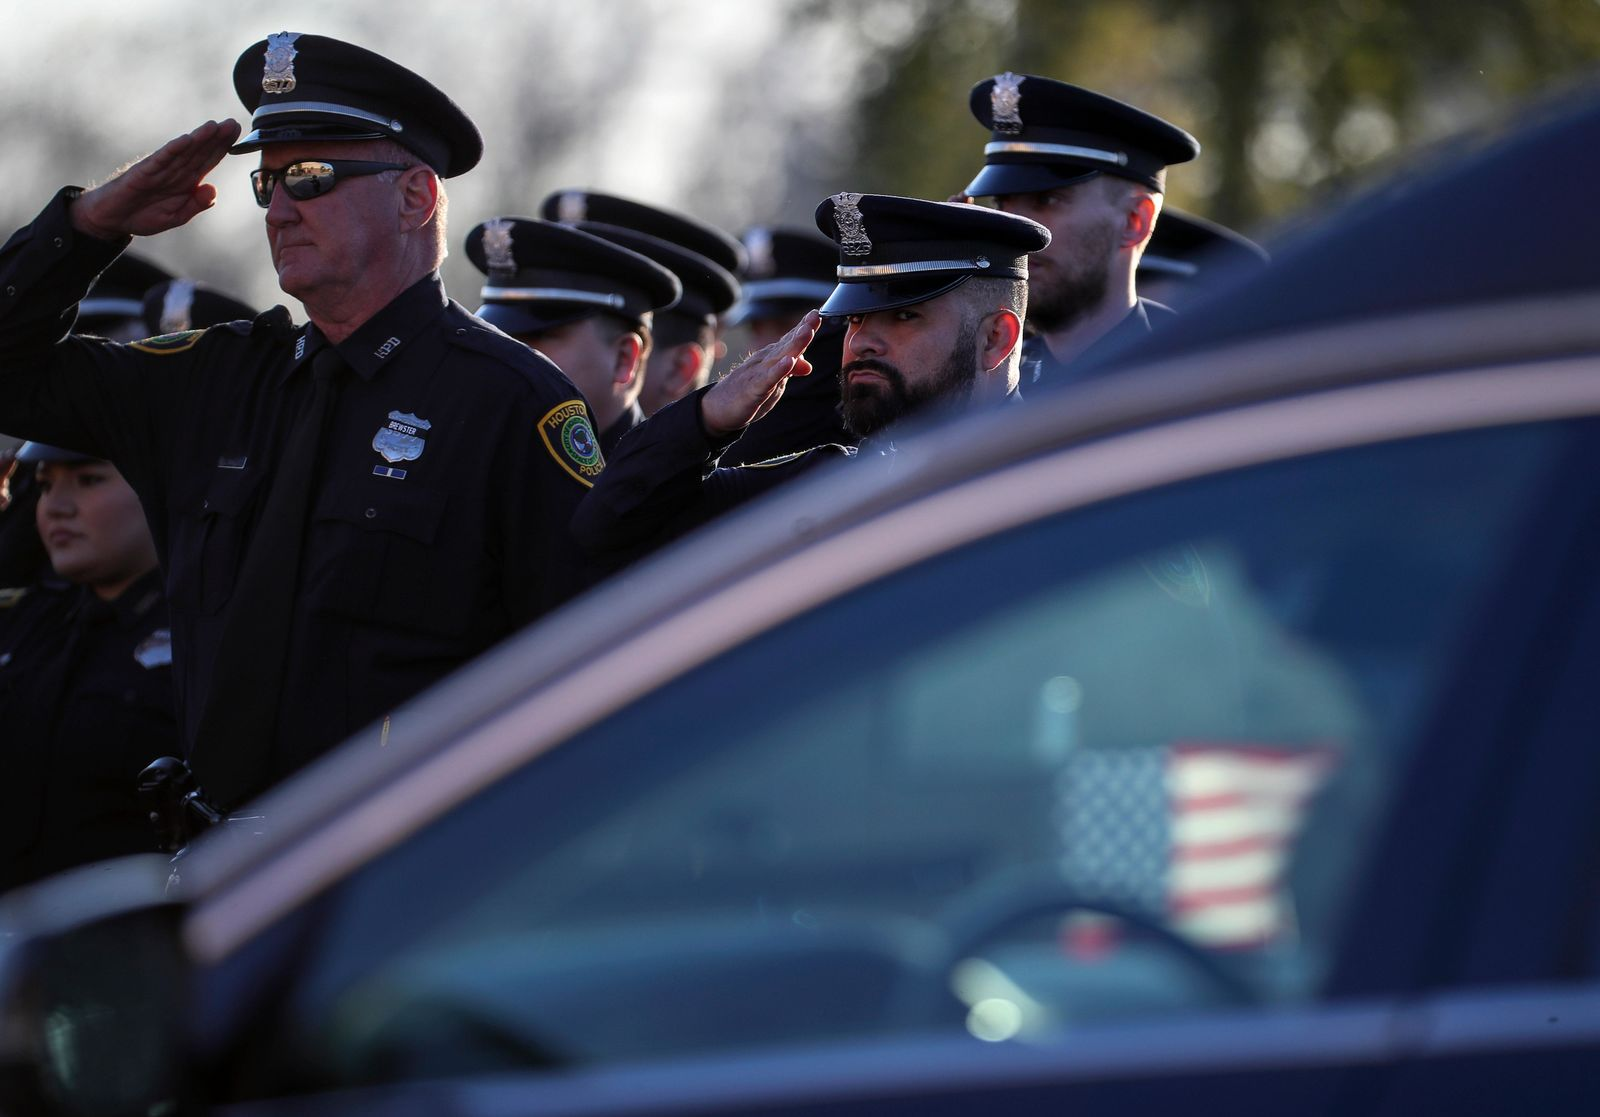 Members of Houston Police Eastside Patrol Division salute as the casket carrying Houston police Sgt. Christopher Brewster arrives, Thursday, Dec. 12, 2019, at Grace Church Houston in Houston. Brewster, 32, was gunned down Saturday evening, Dec. 7, while responding to a domestic violence call in Magnolia Park. Police arrested 25-year-old Arturo Solis that night in the shooting death. Solis faces capital murder charges. (Jon Shapley/Houston Chronicle via AP)